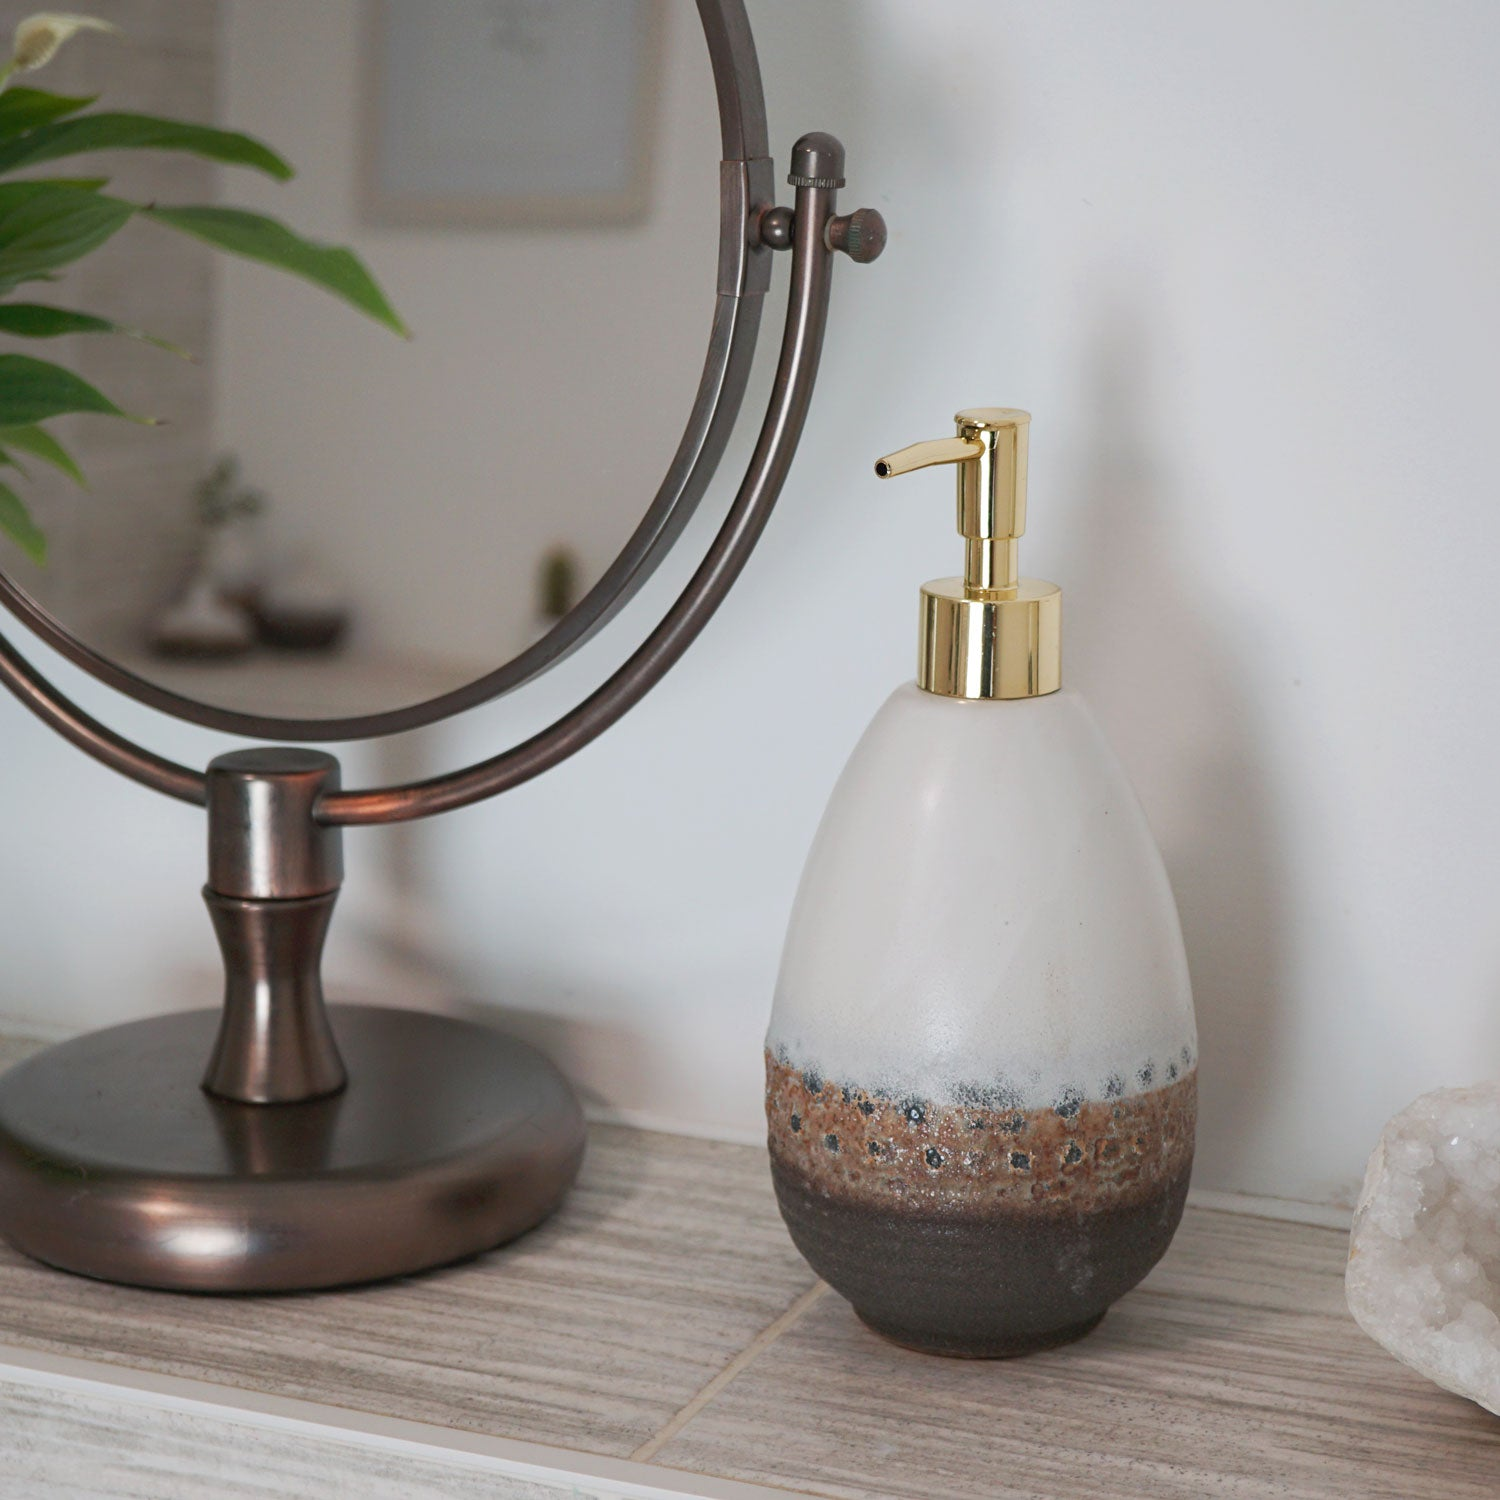 natural stone soap dispenser kitchen bathroom